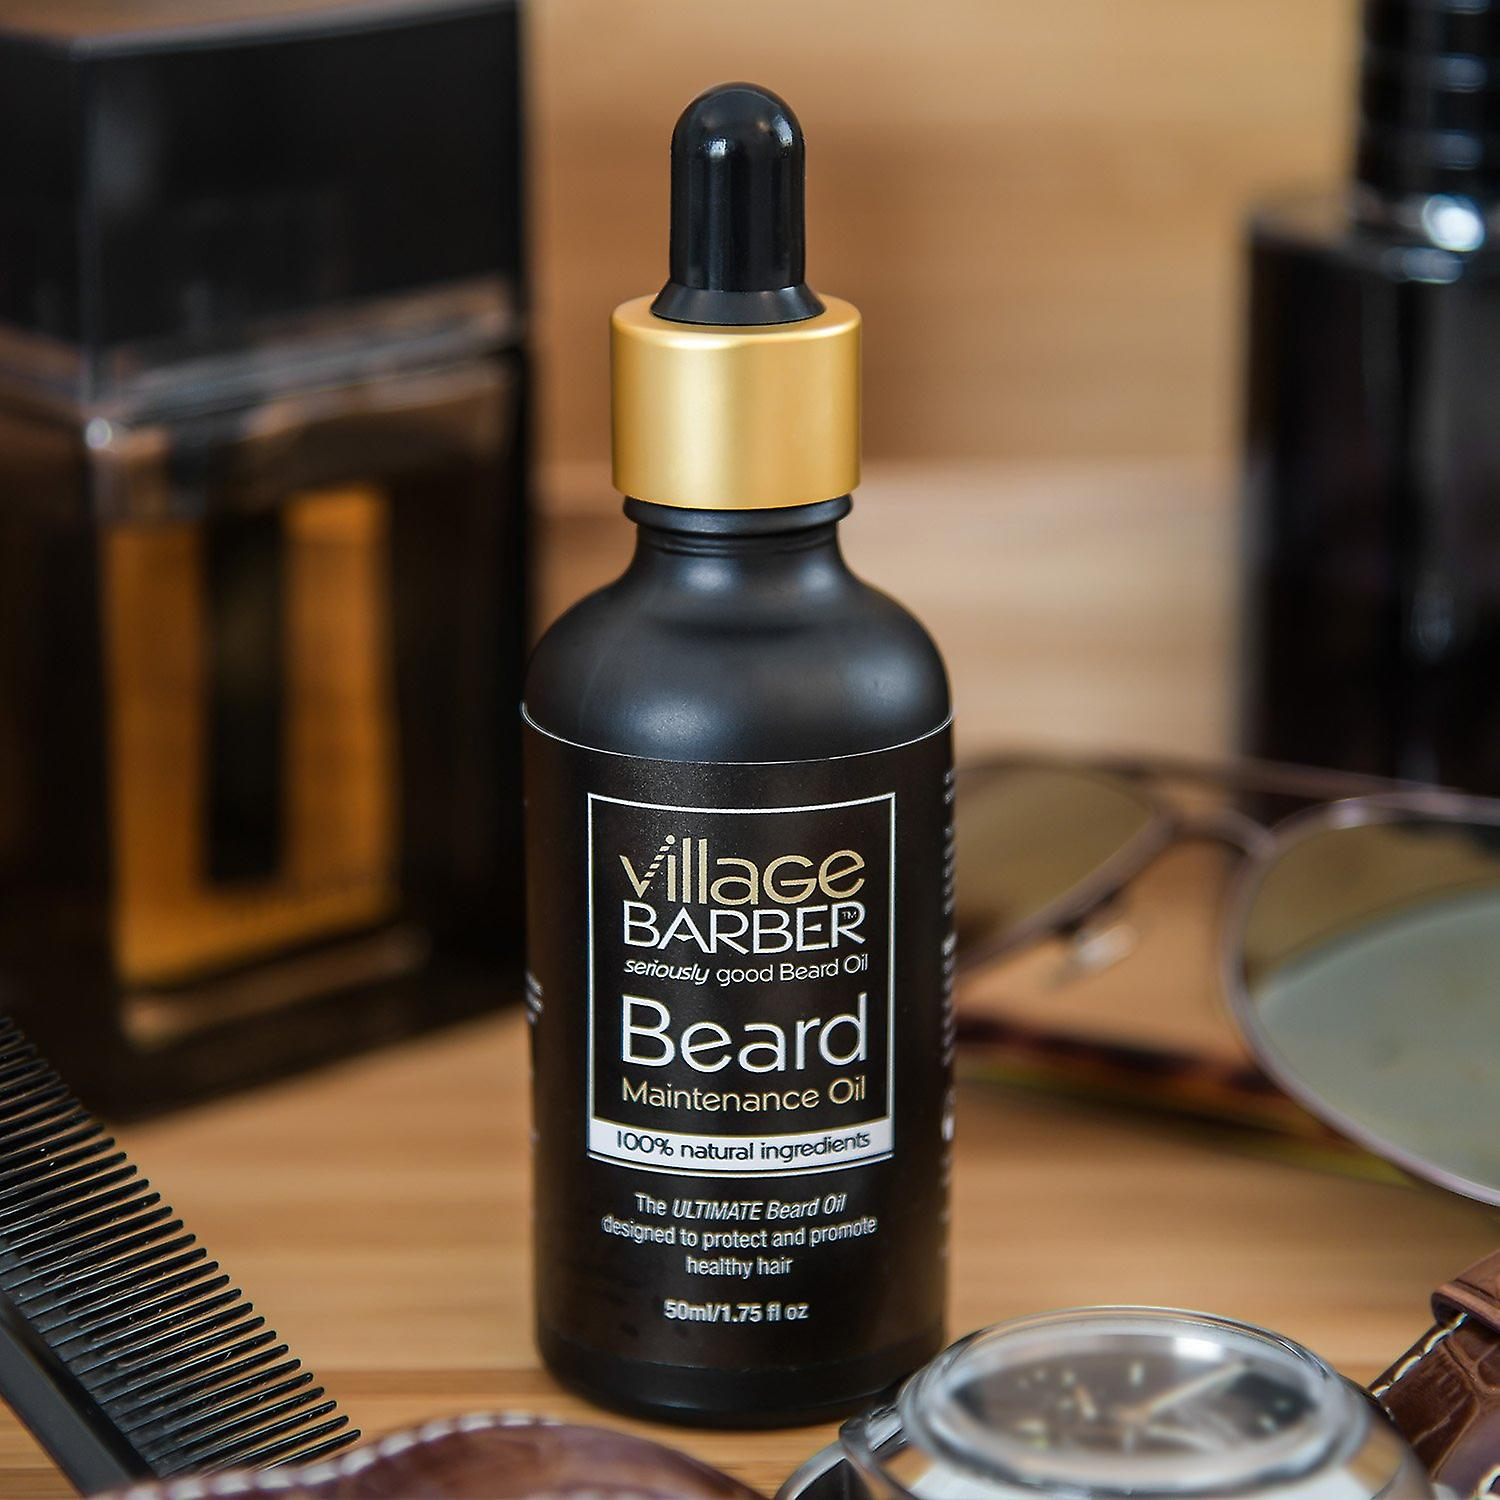 Beard maintenance oil